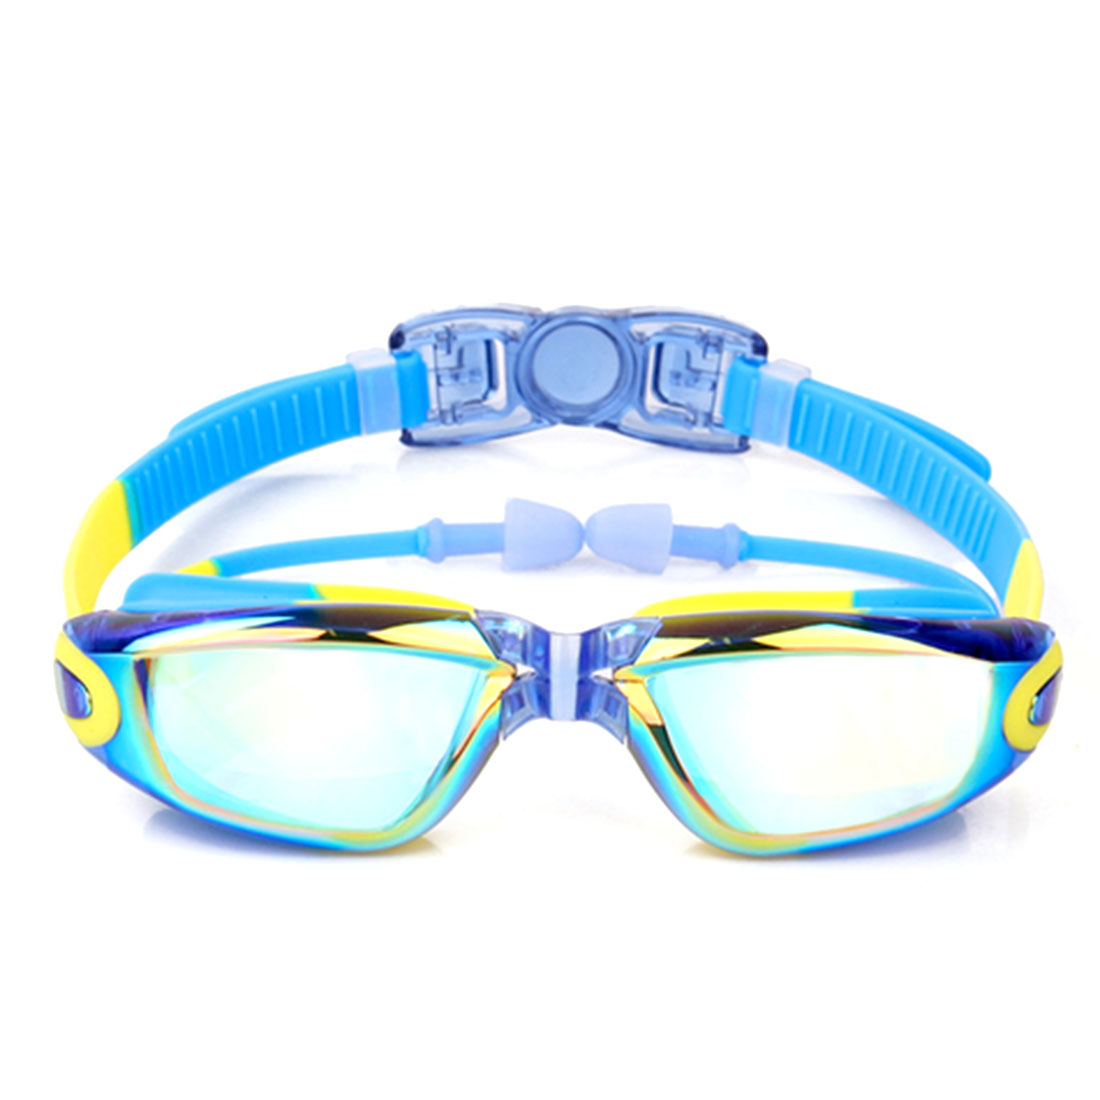 Waterproof Antifog Children Swimming Goggles for Kids Colorful Blue + Yellow Flat Lens by